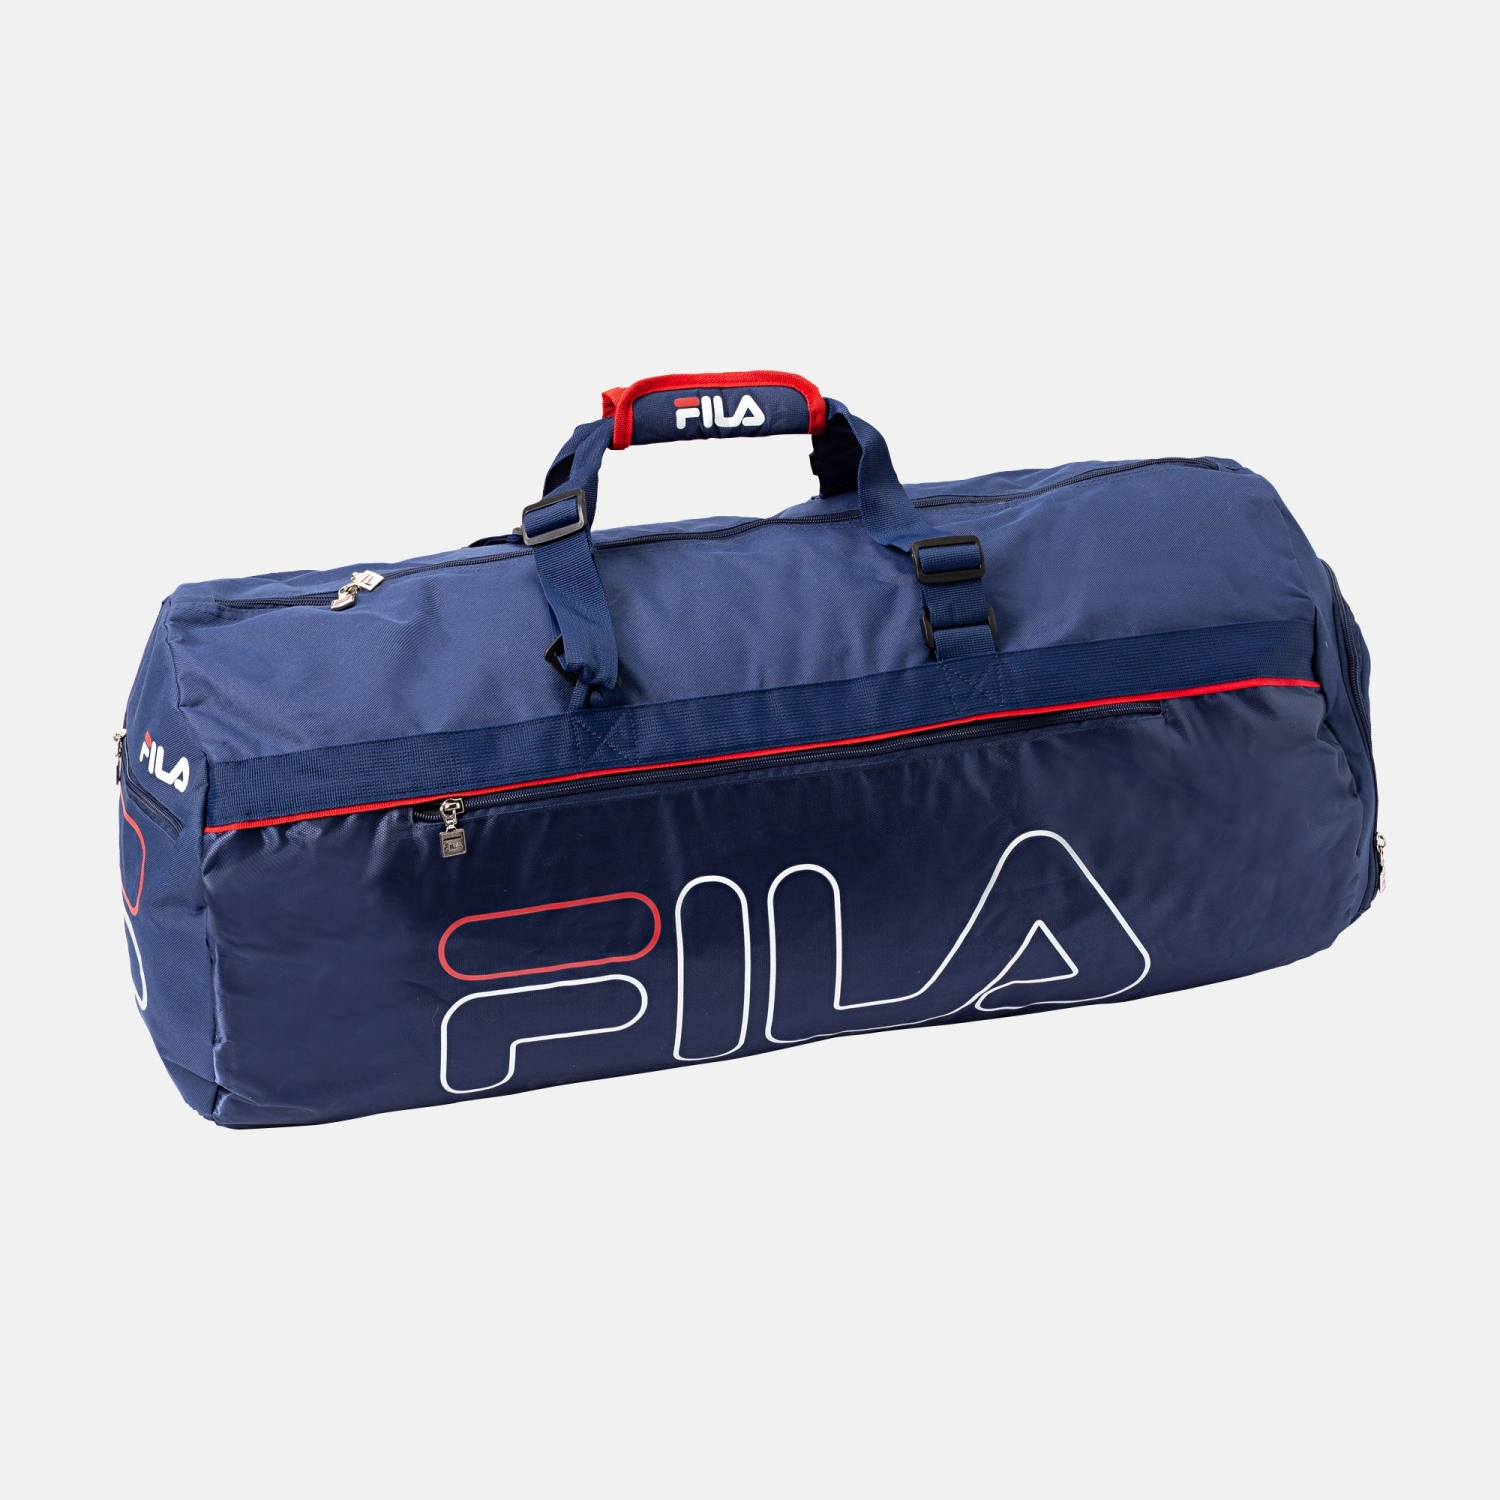 Fila Tennis Bag Oscar Bild 1